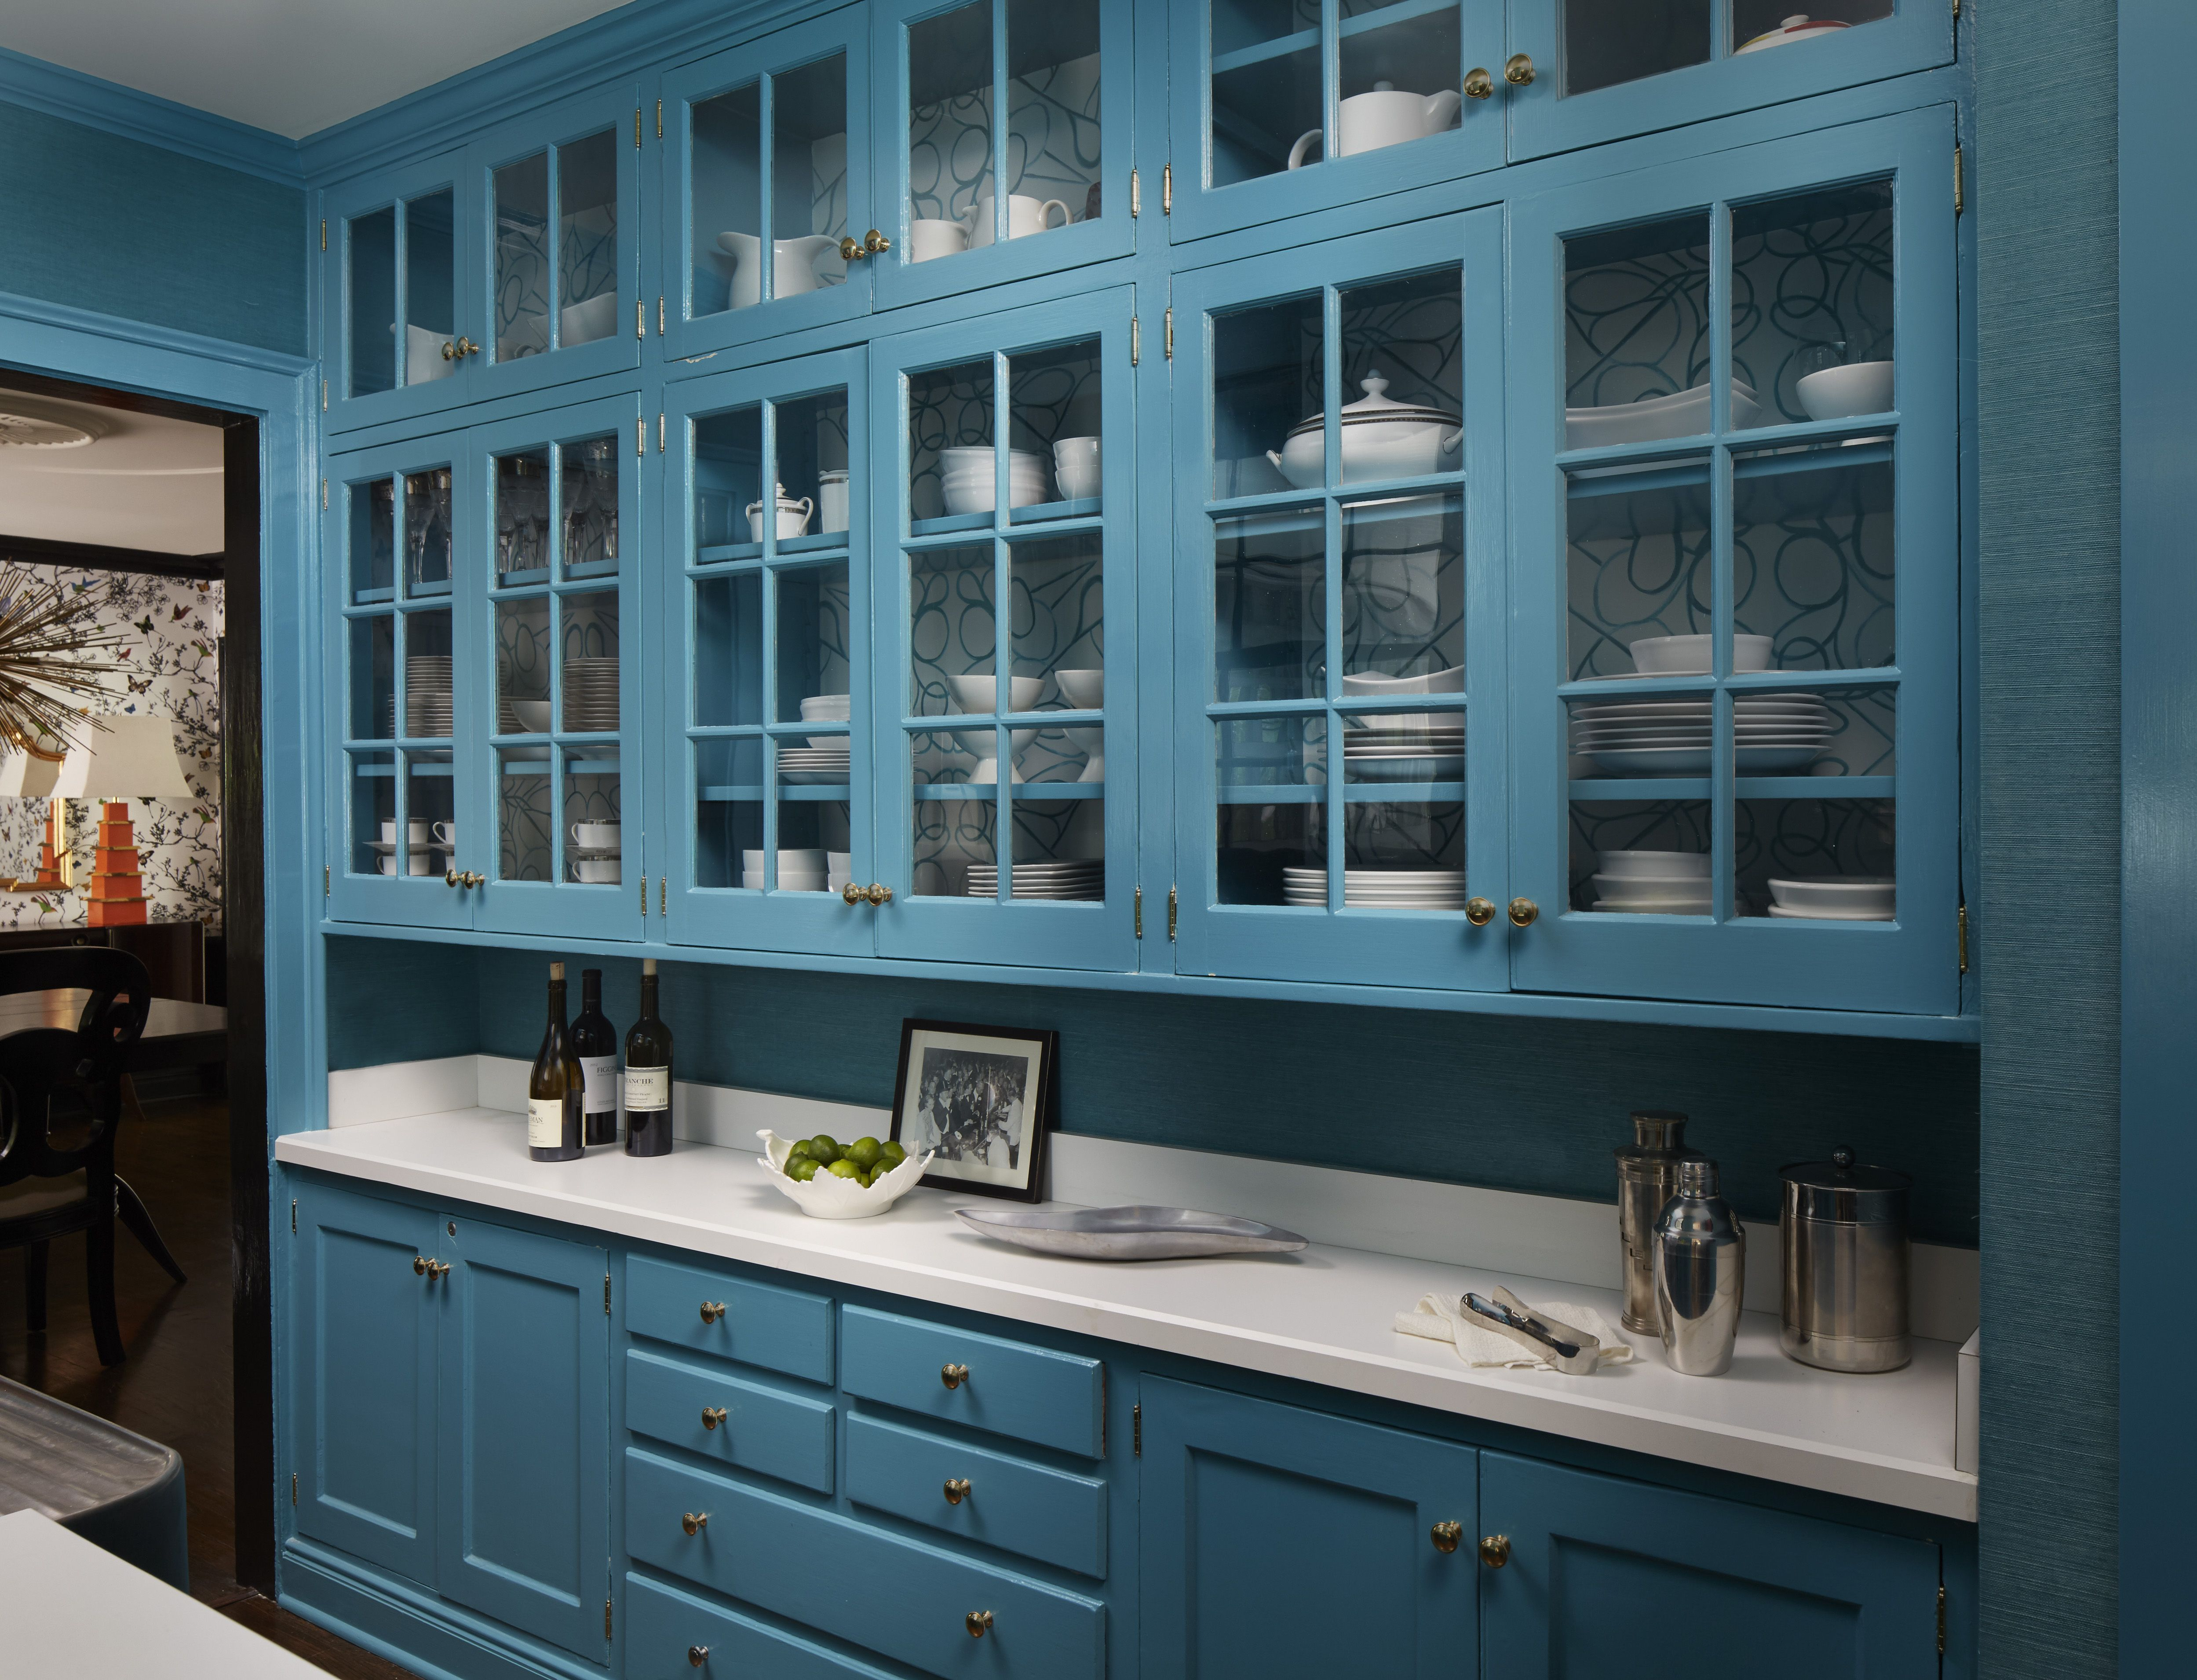 rolling island for kitchen cabinet door replacement lowes 36 chic butlers pantry ideas - what is a butler's pantry?